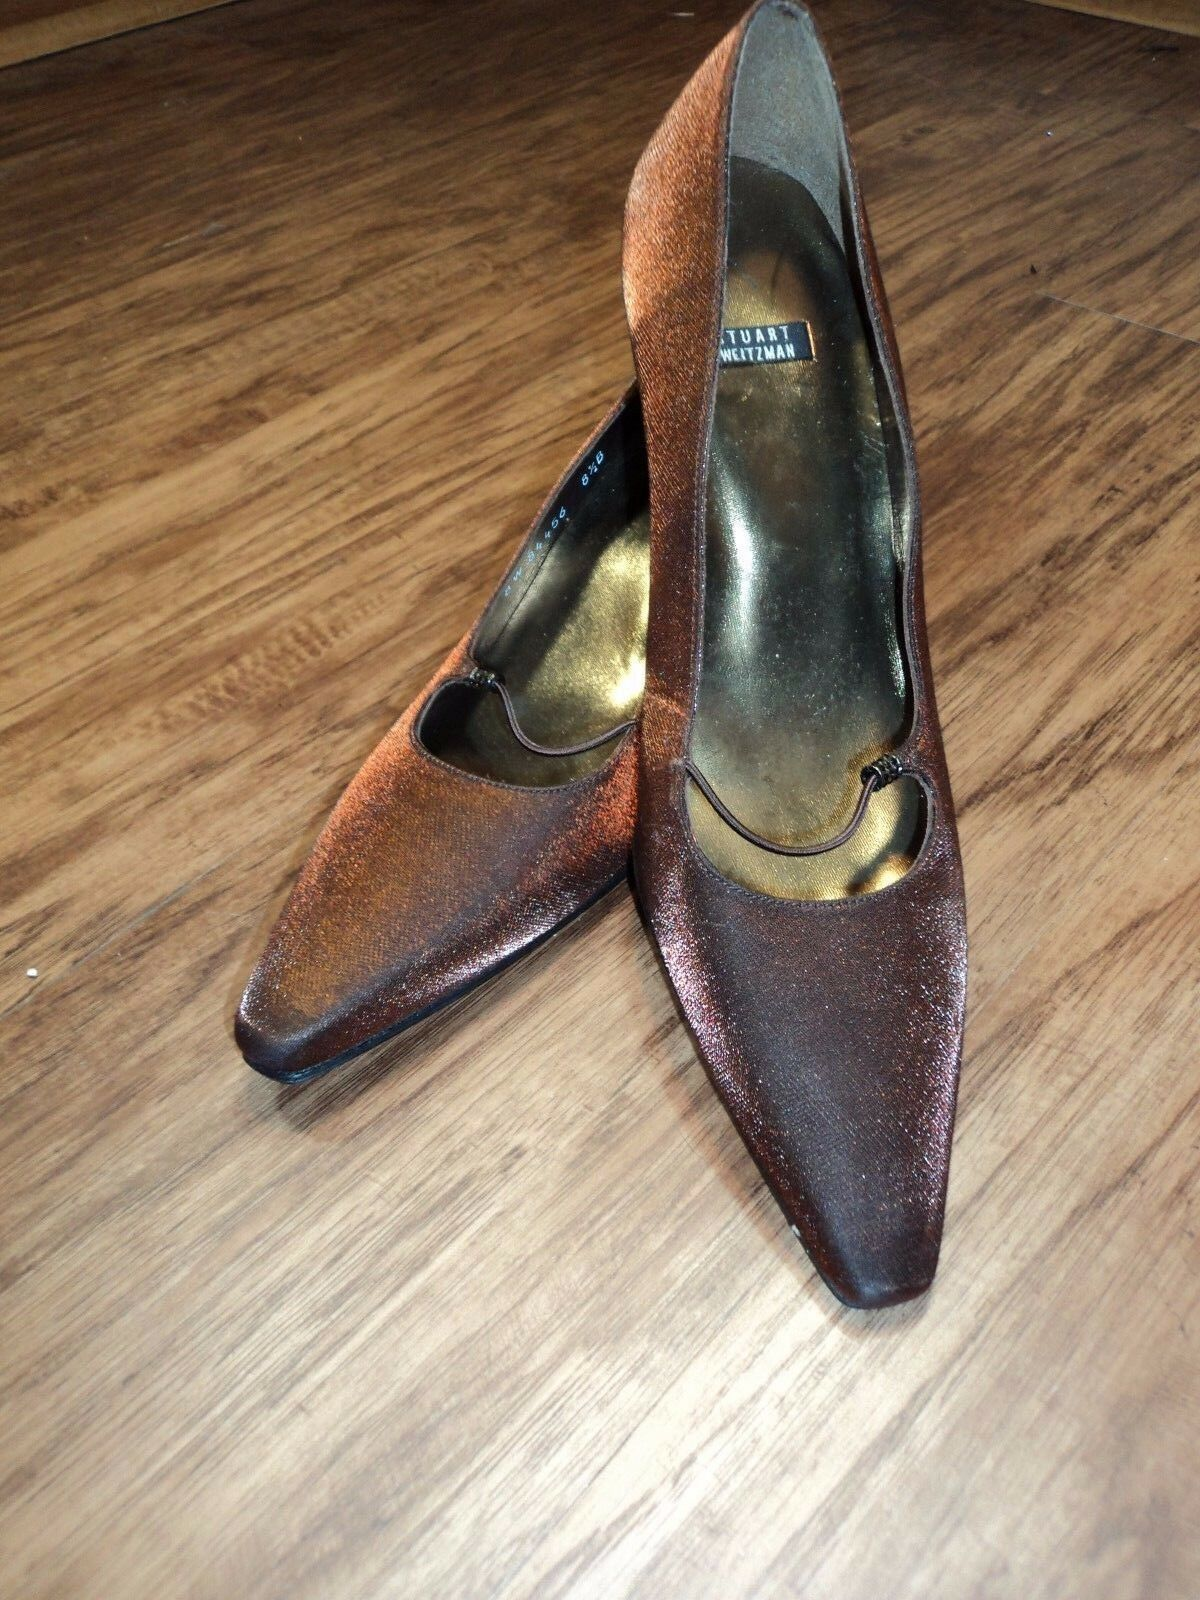 Stuart Heels, Weitzman Metallic Copper Mary Jane Stiletto Heels, Stuart Größe 8.5B Stunning HOT 87418a